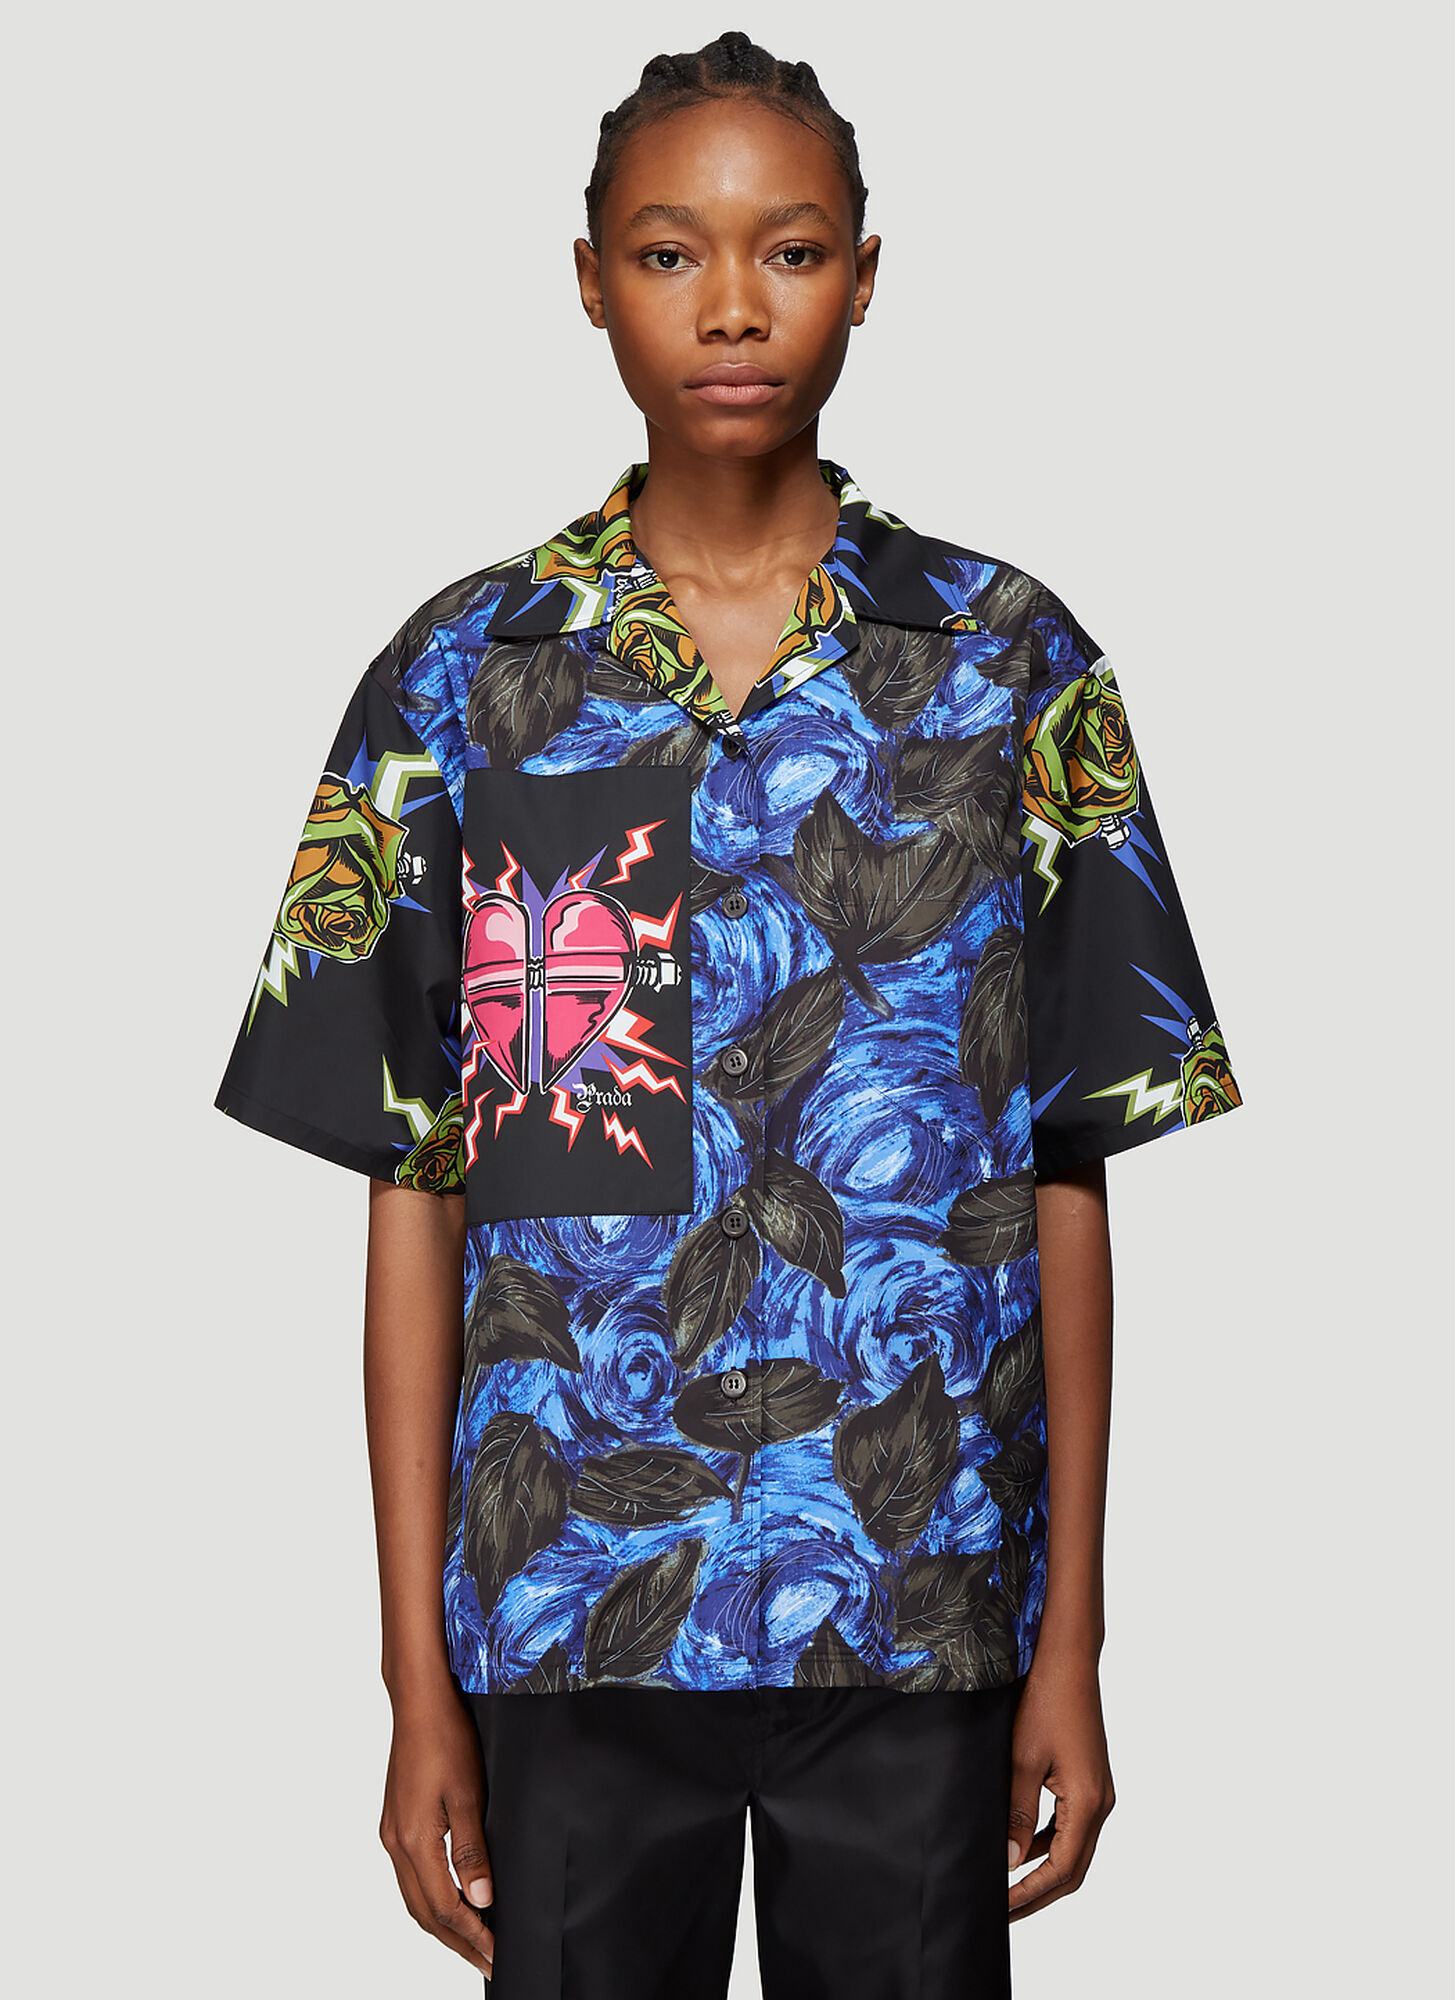 Prada Short Sleeve Print Shirt in Blue and Black